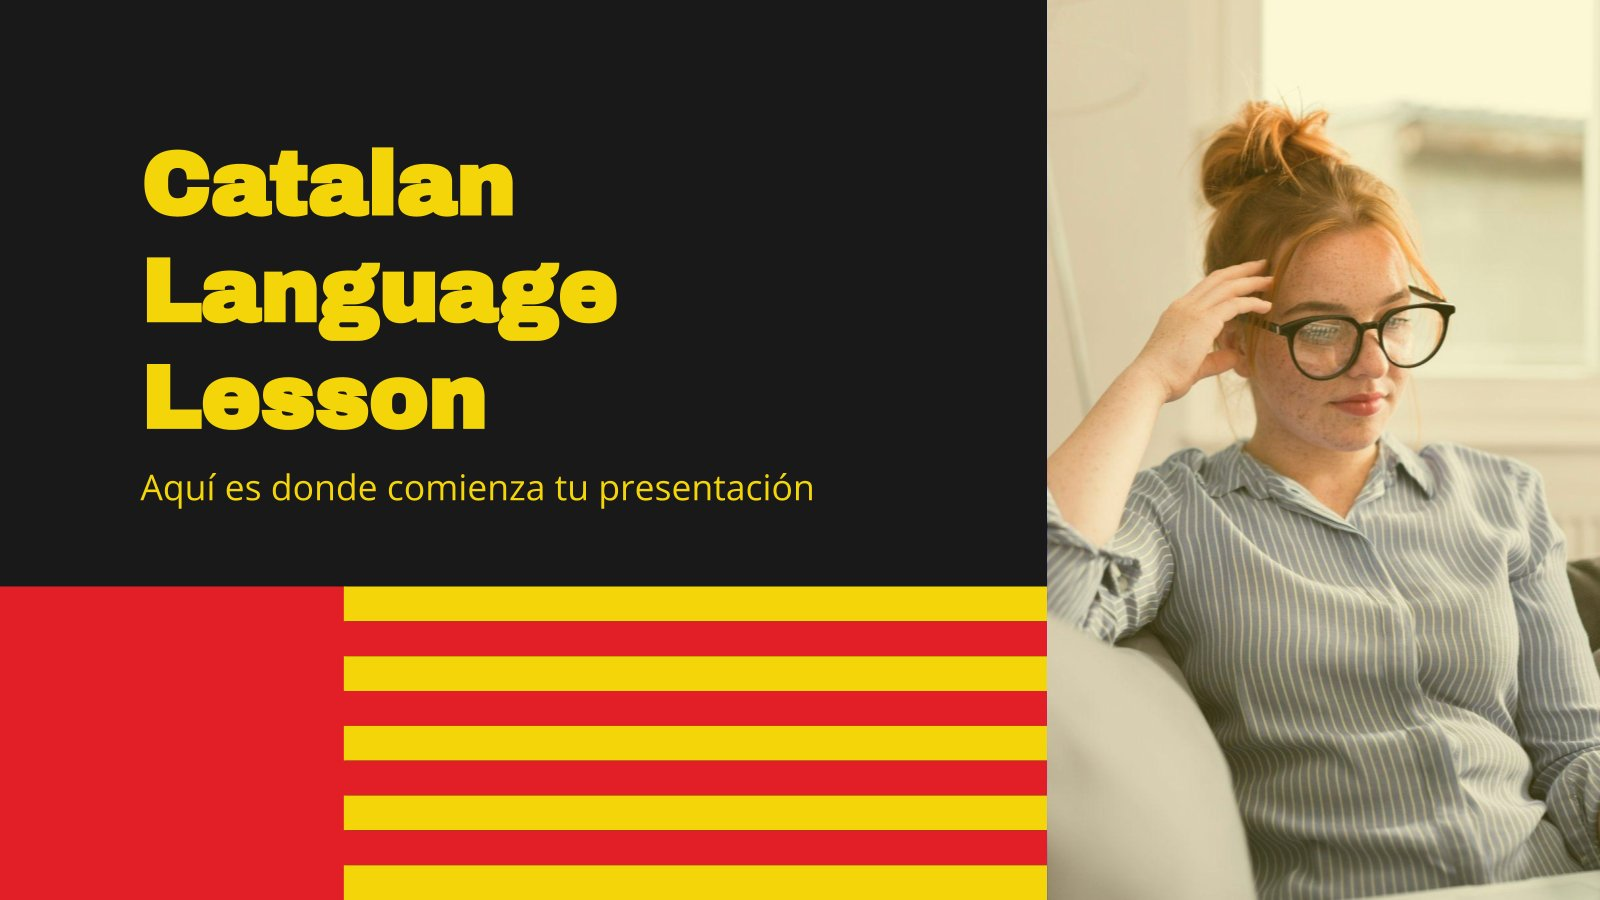 Catalan Language Lesson presentation template